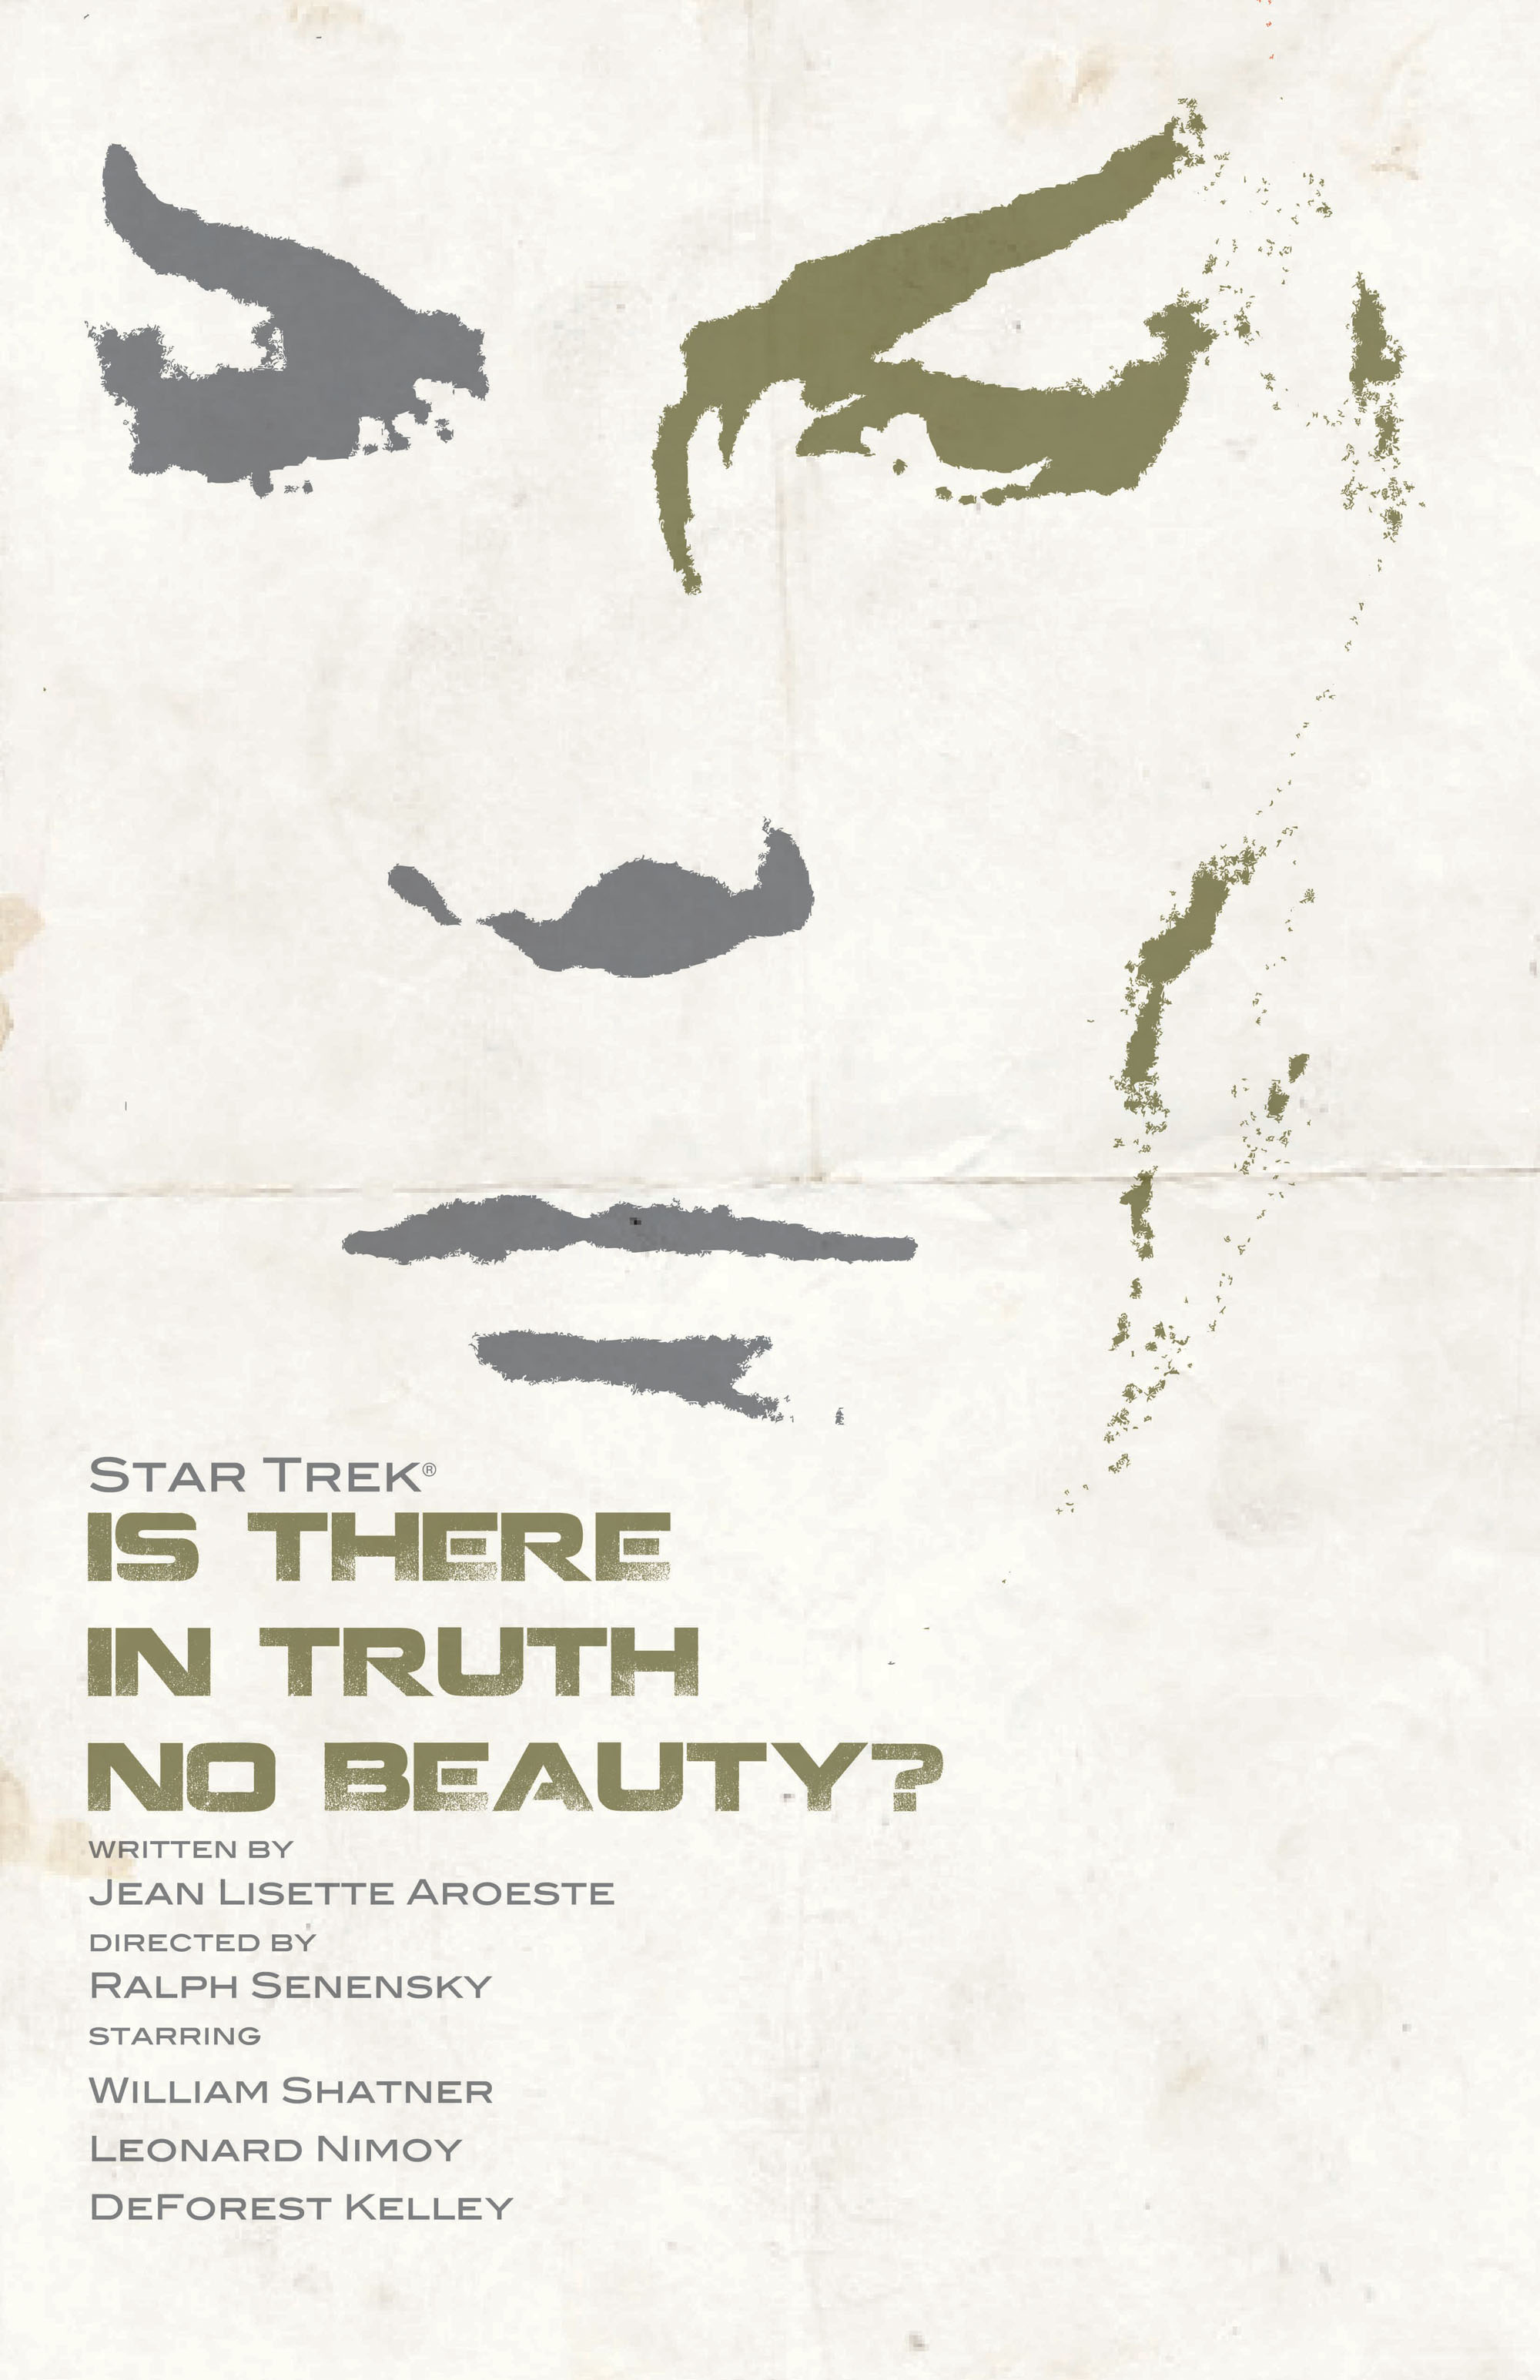 'Is There in Truth No Beauty?' from 'Star Trek: The Art of Juan Ortiz'